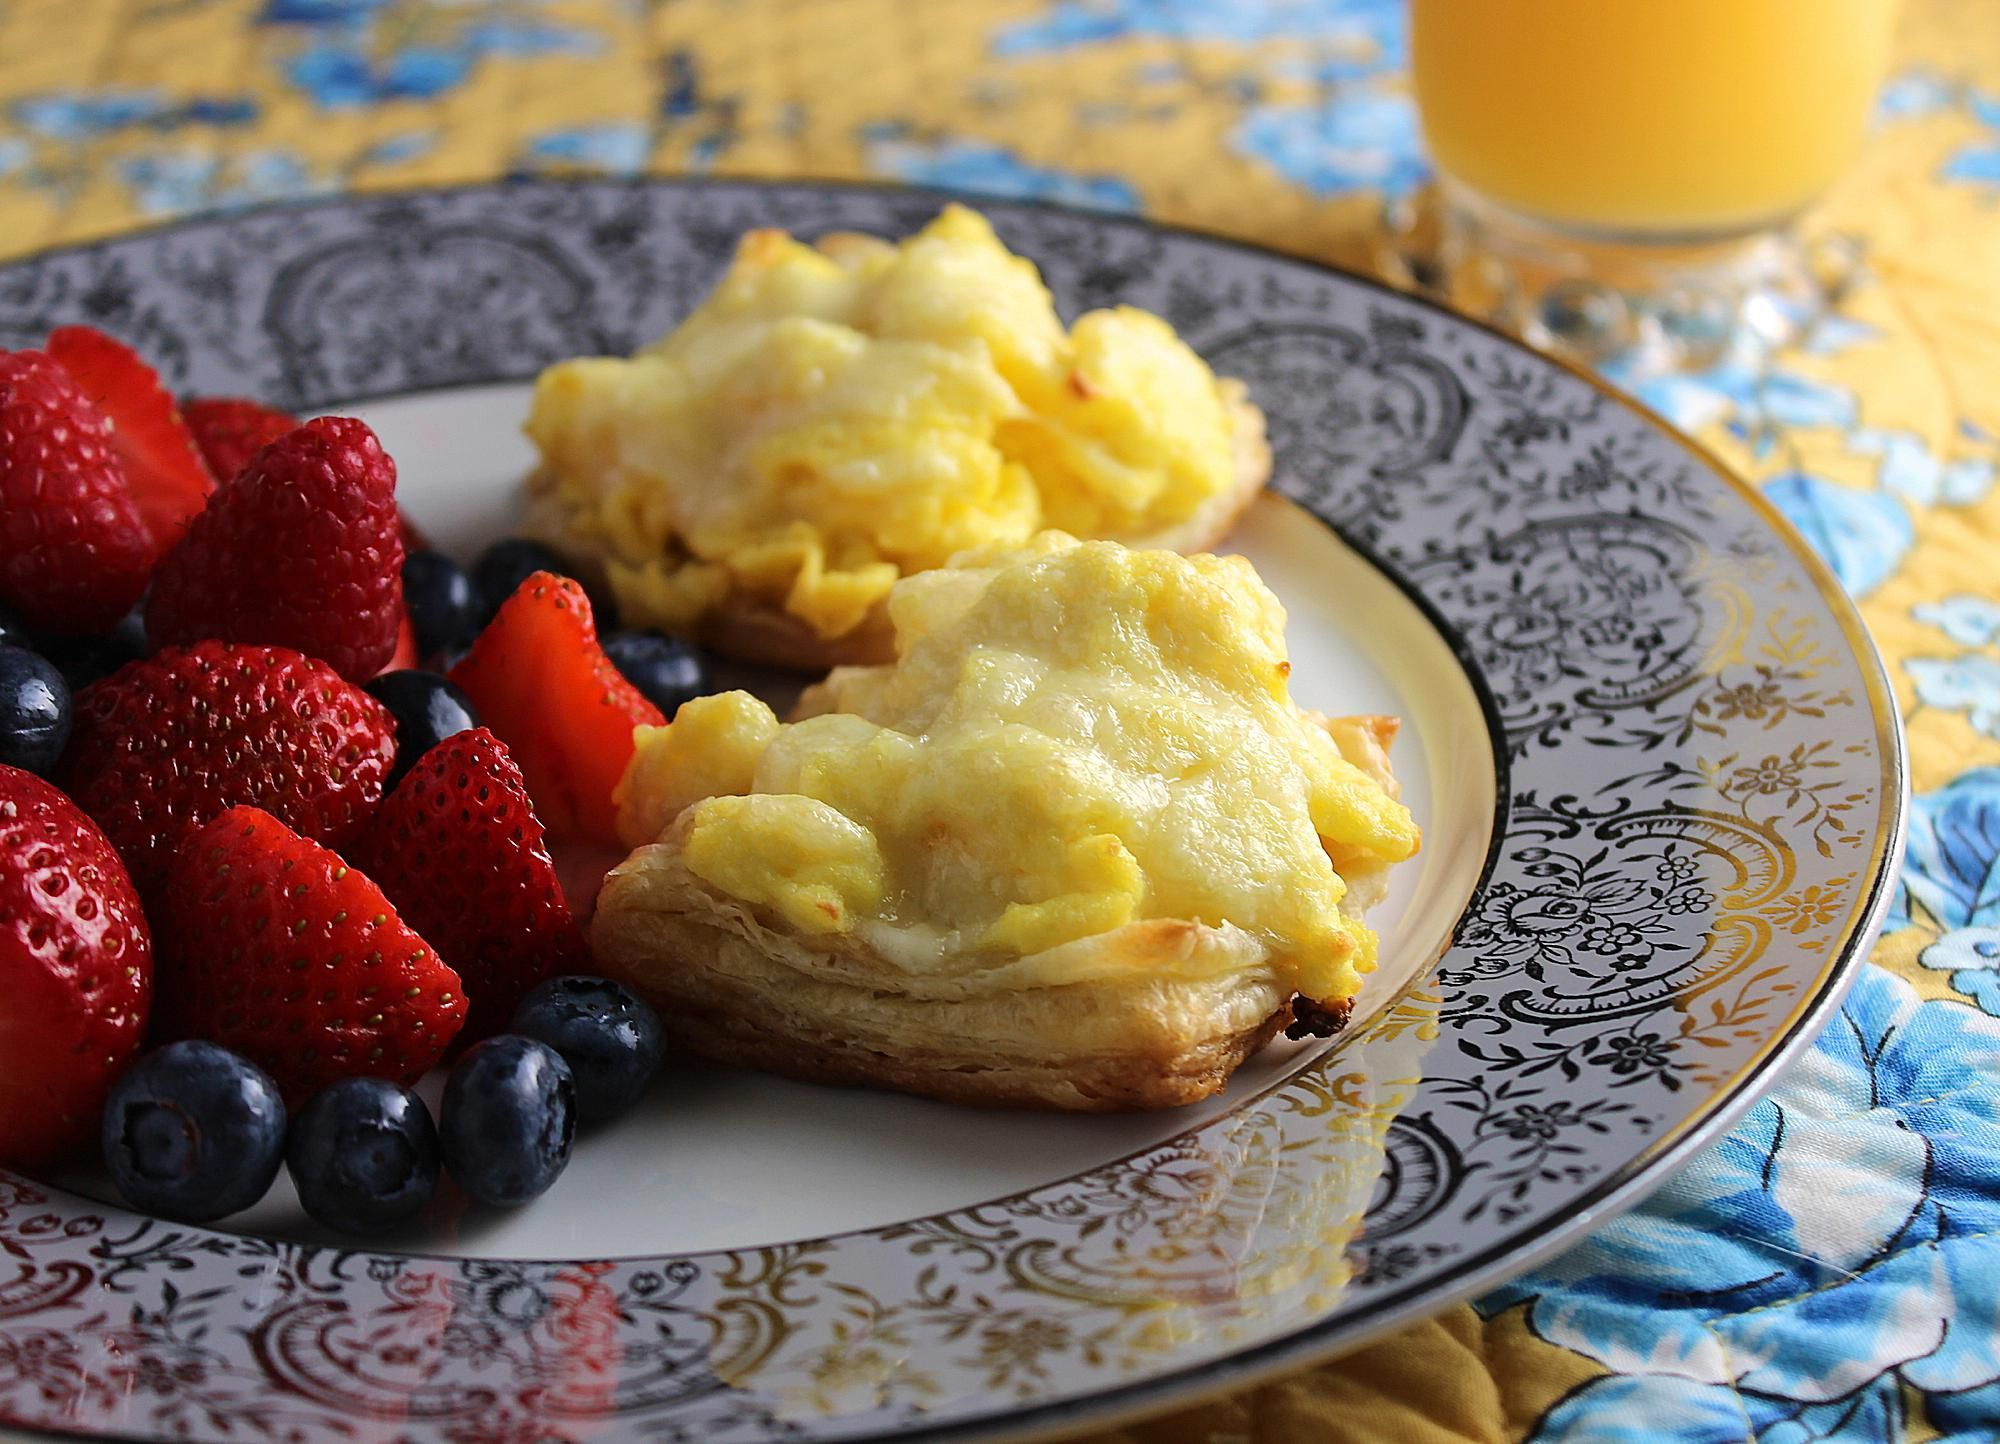 Make Ahead Scrambled Eggs in Puff Pastry is a delicious easy recipe with fluffy eggs in crisp pastry shells.